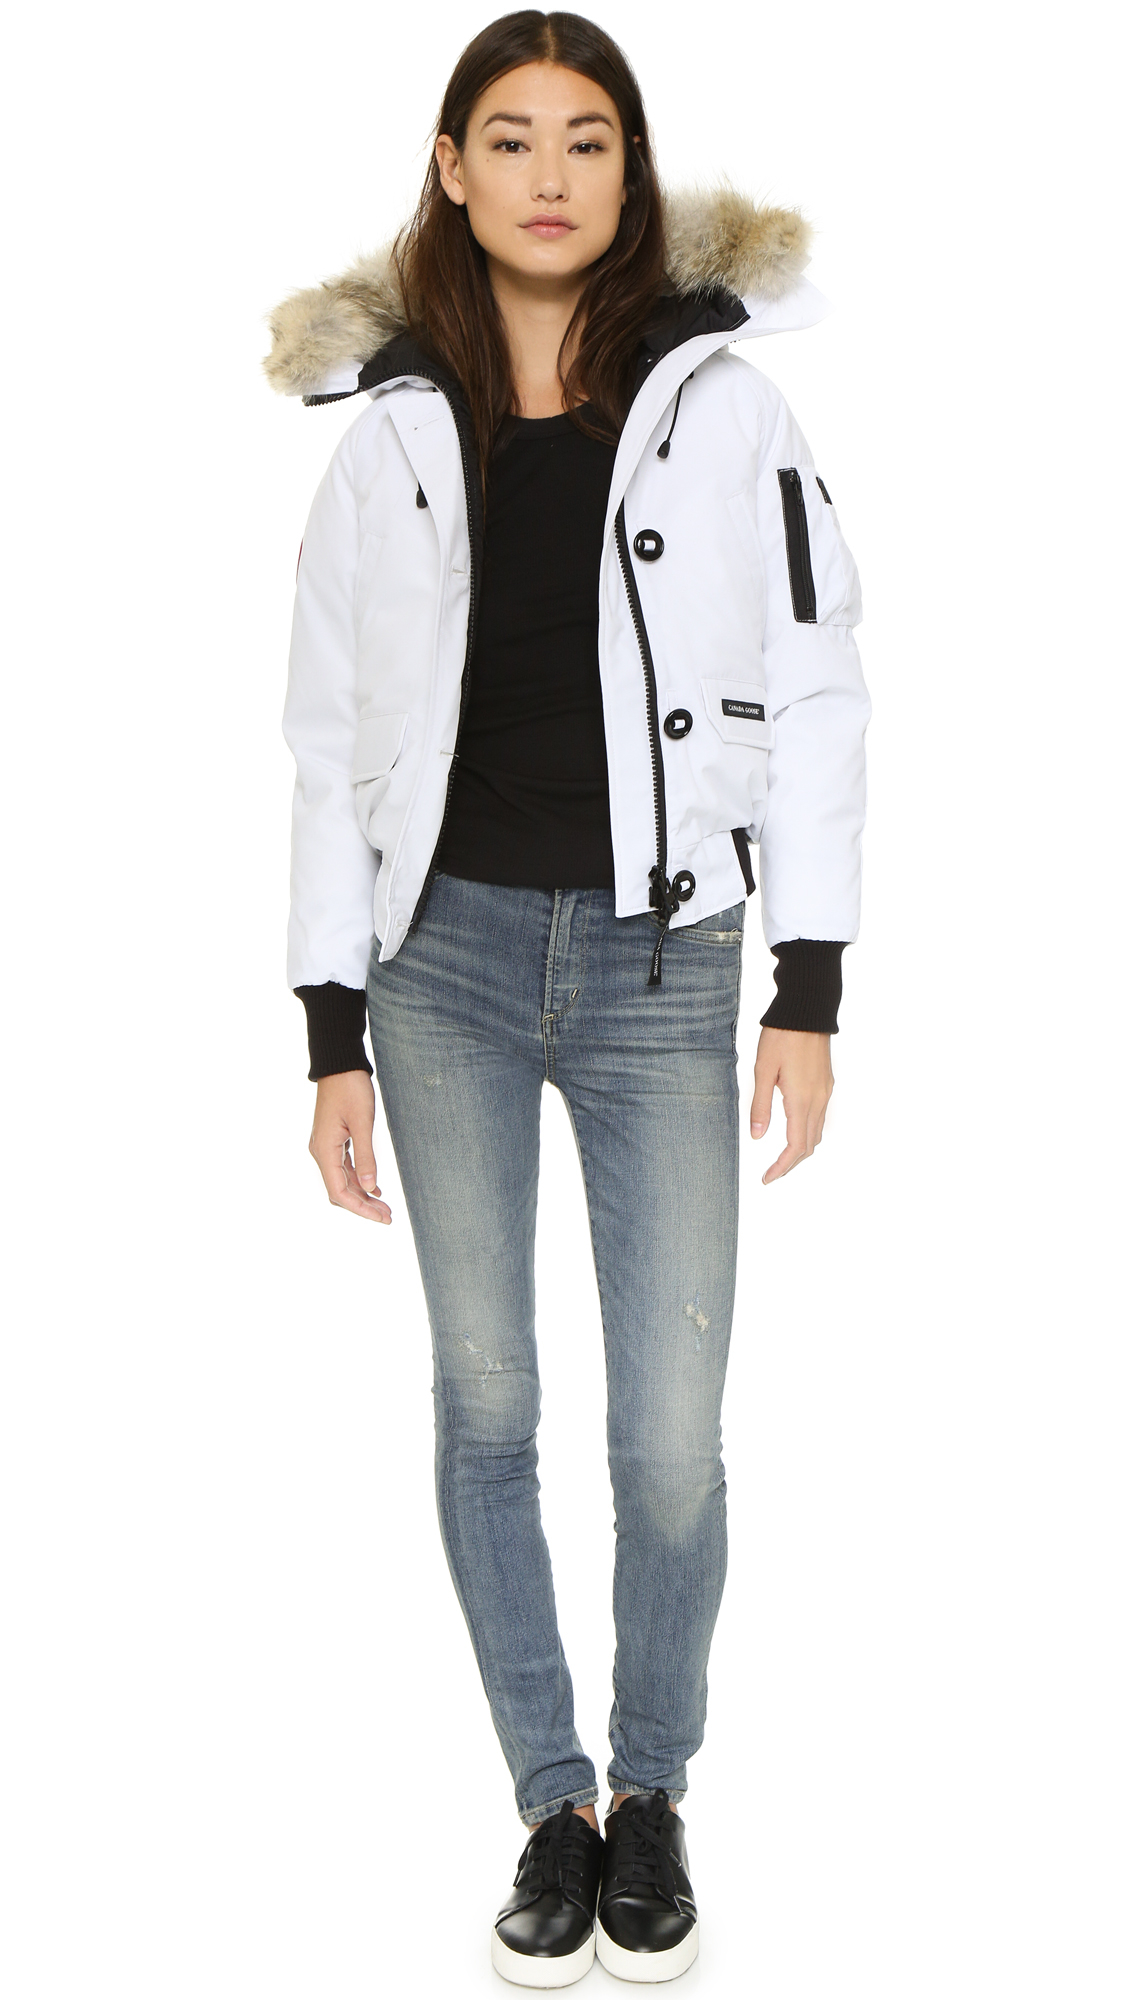 Canada Goose Chilliwack Bomber Jacket in White - Lyst